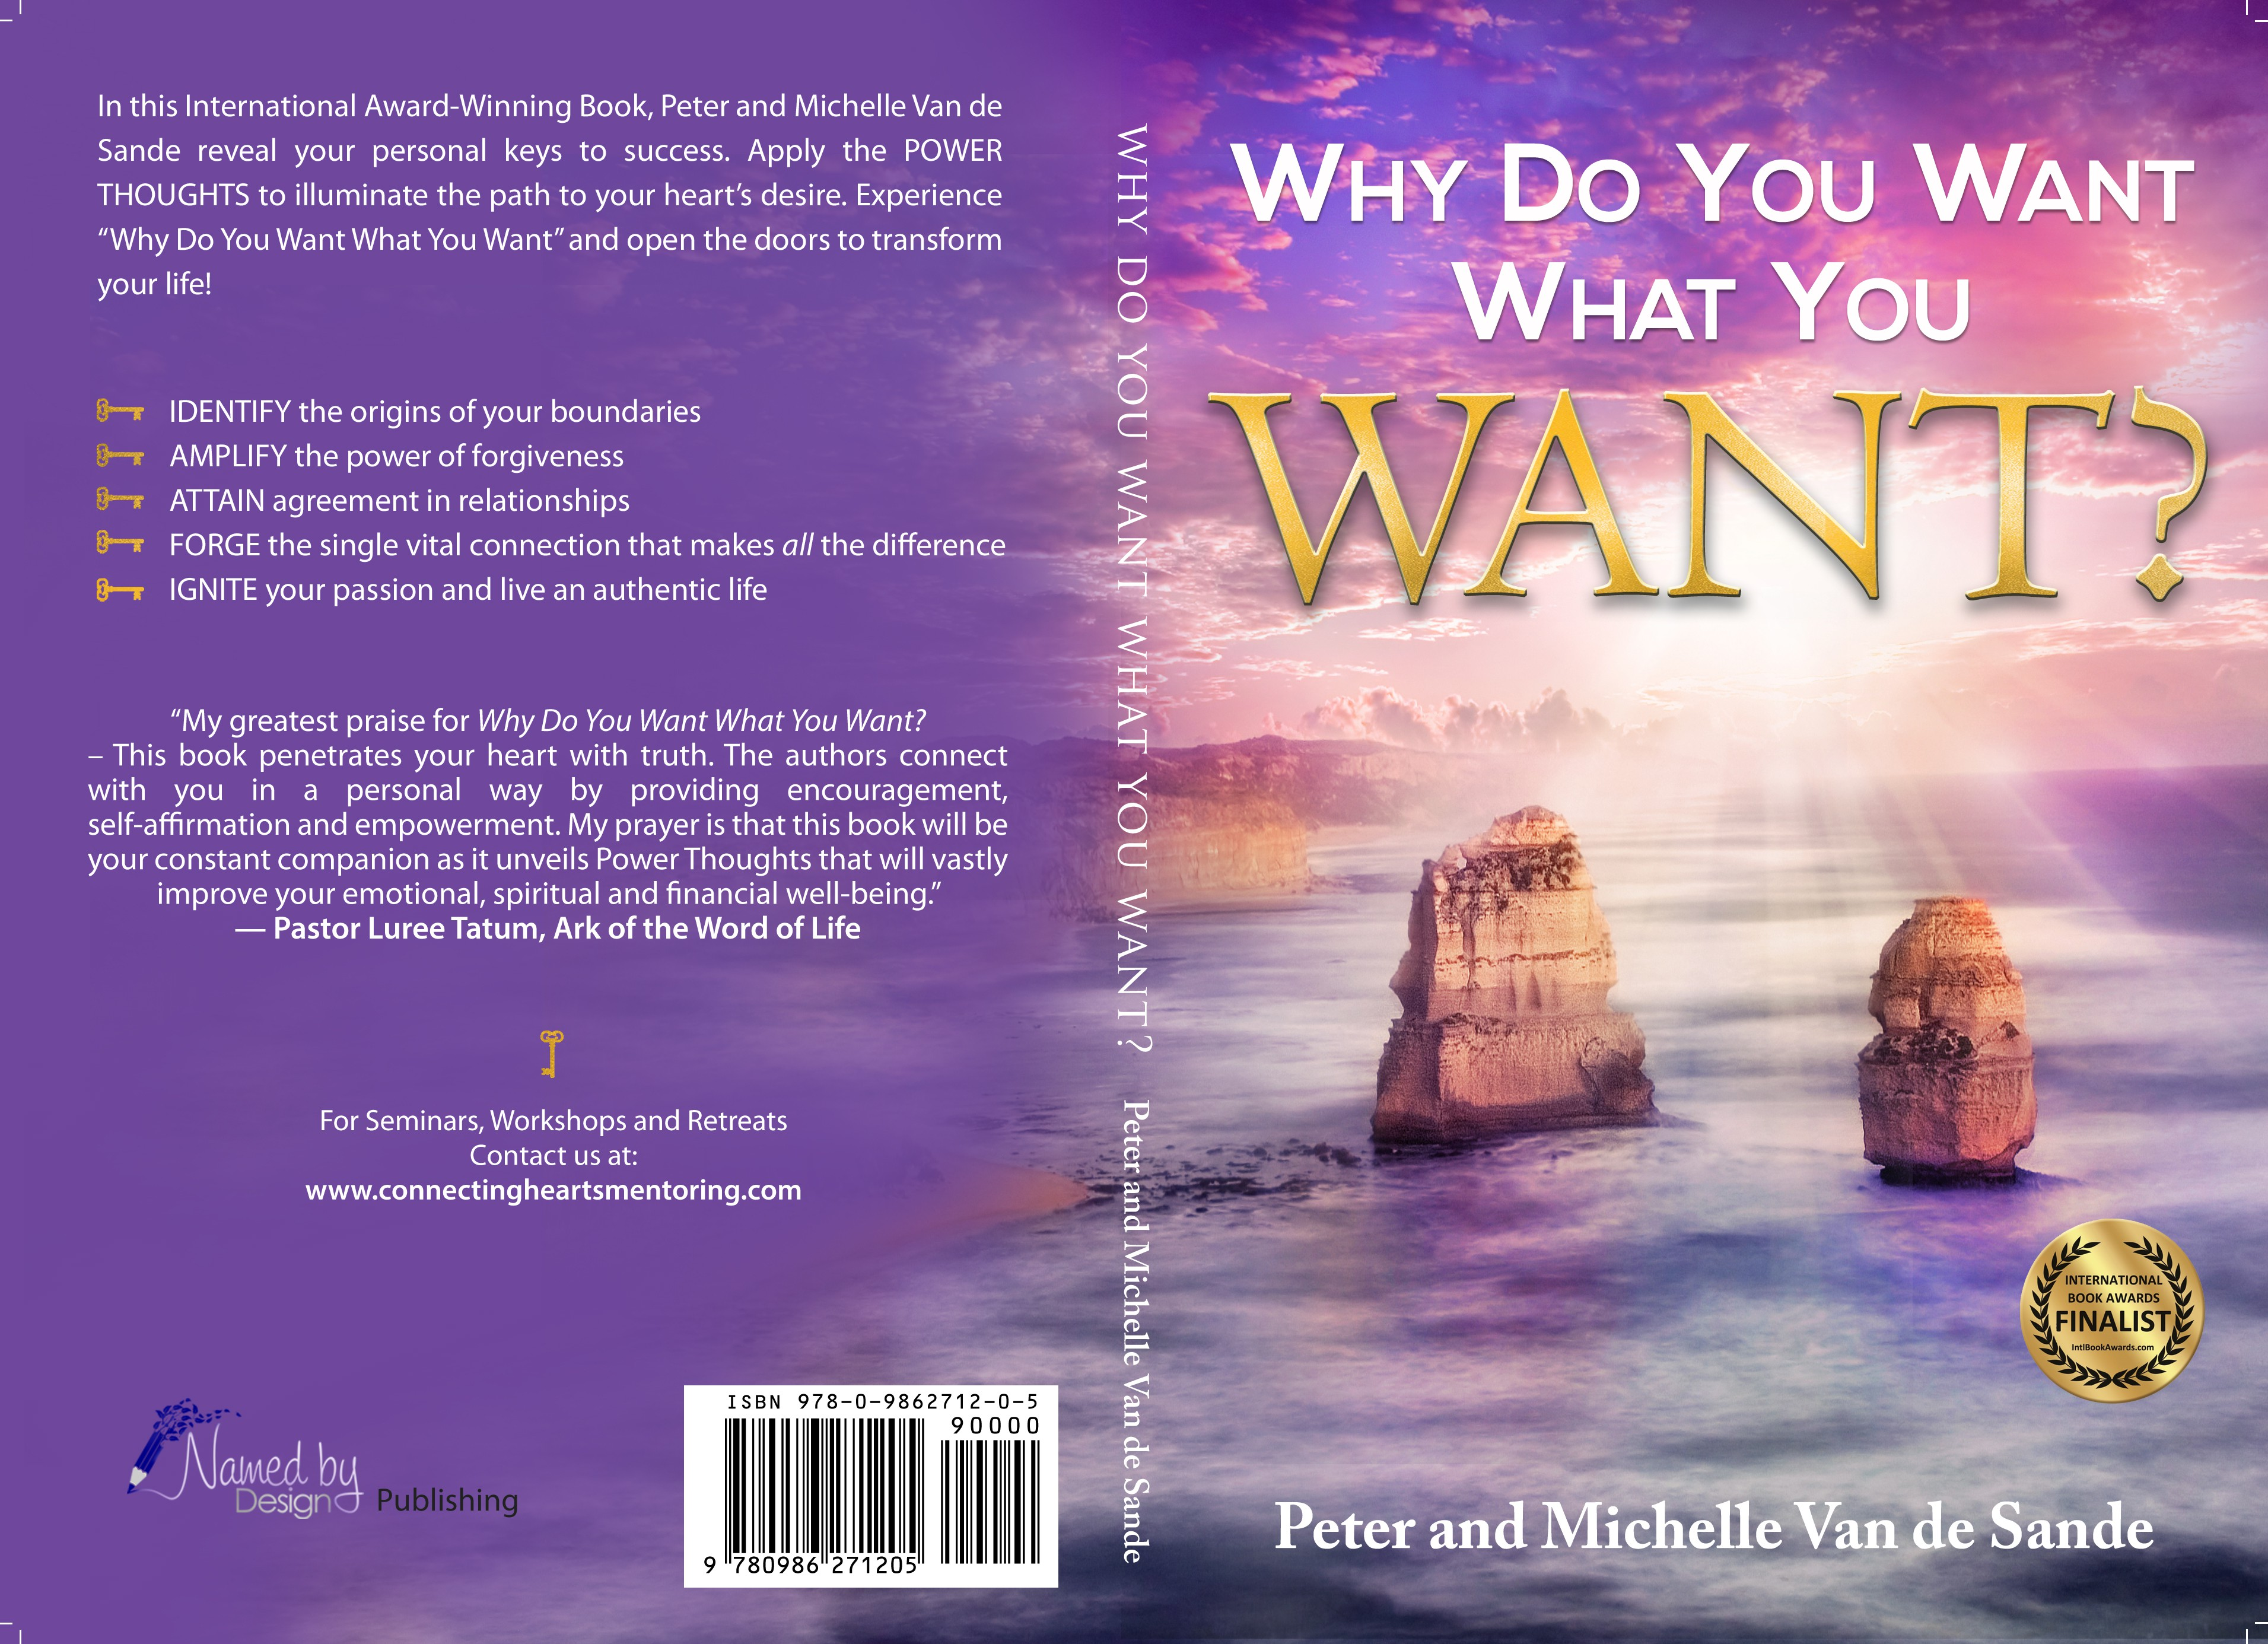 Why do you want what you want?